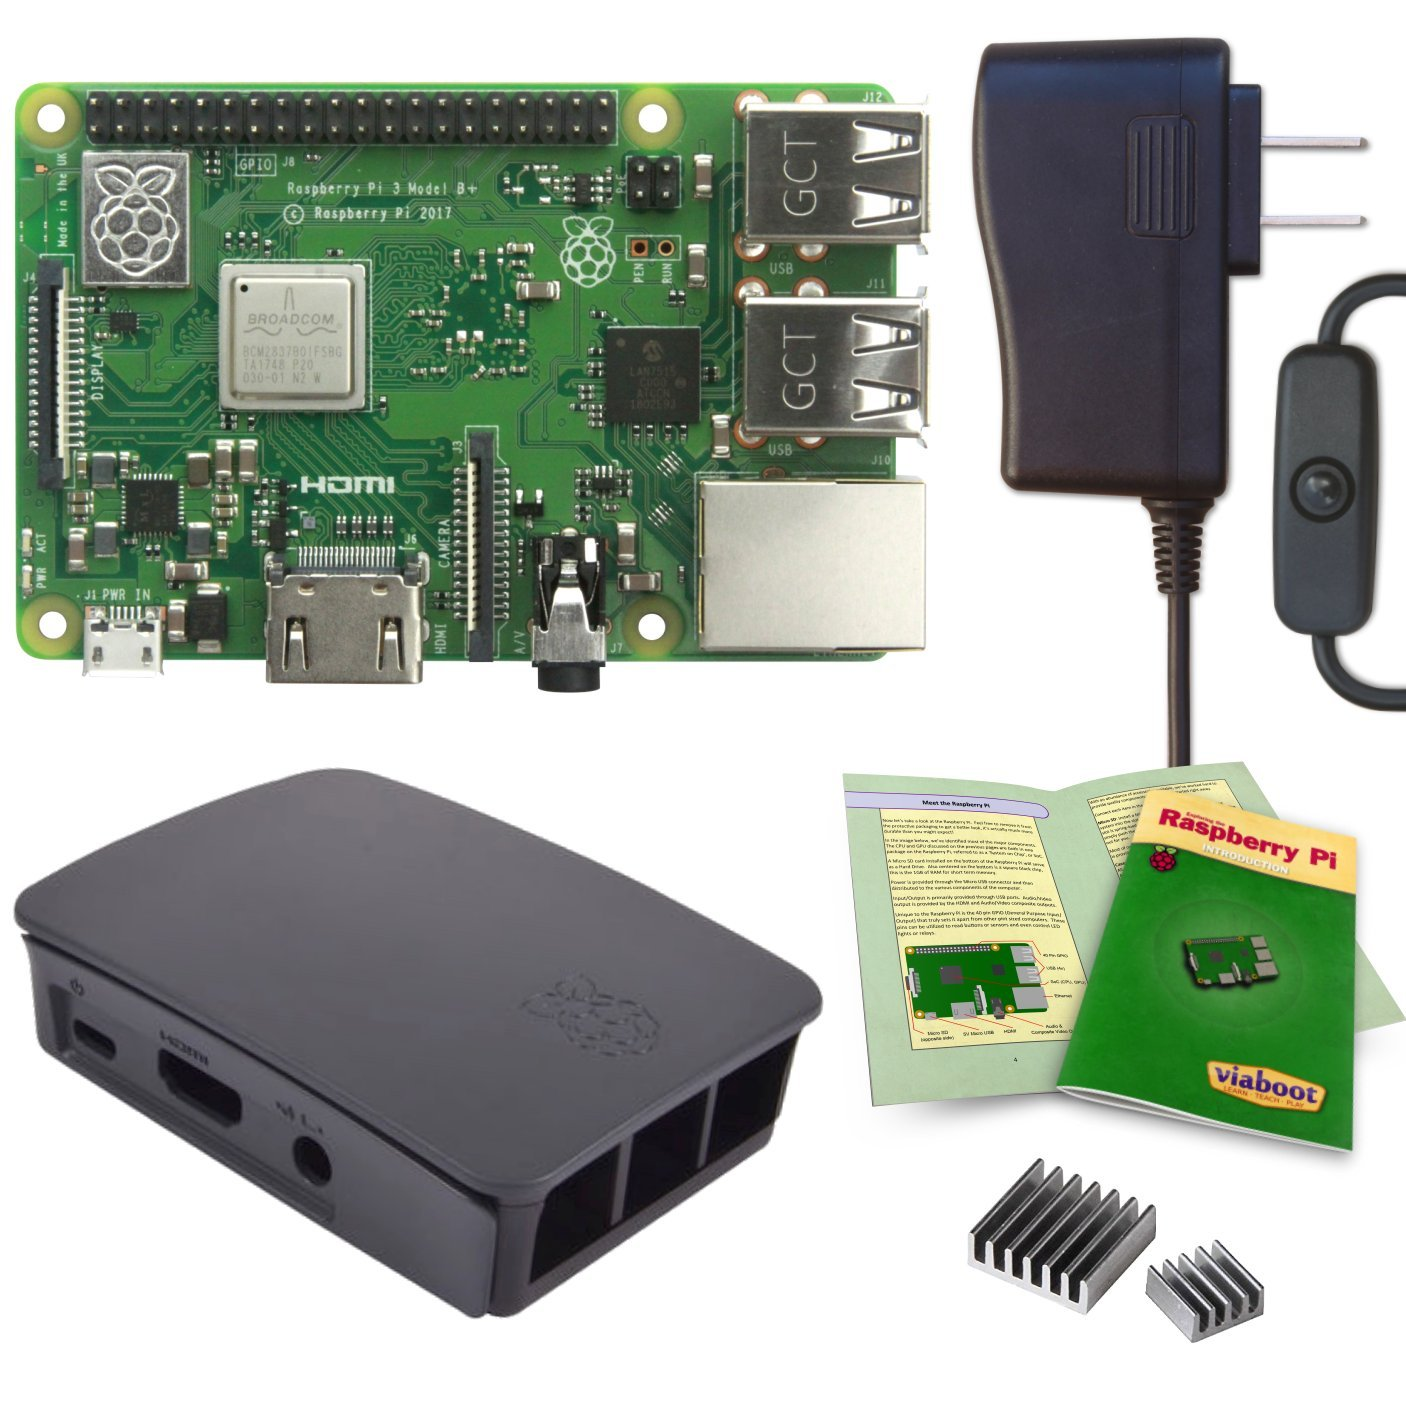 Viaboot Raspberry Pi 3 B+ Power Kit — UL Listed 2.5A Power Supply, Official Rasbperry Pi Foundation Black/Gray Case Edition